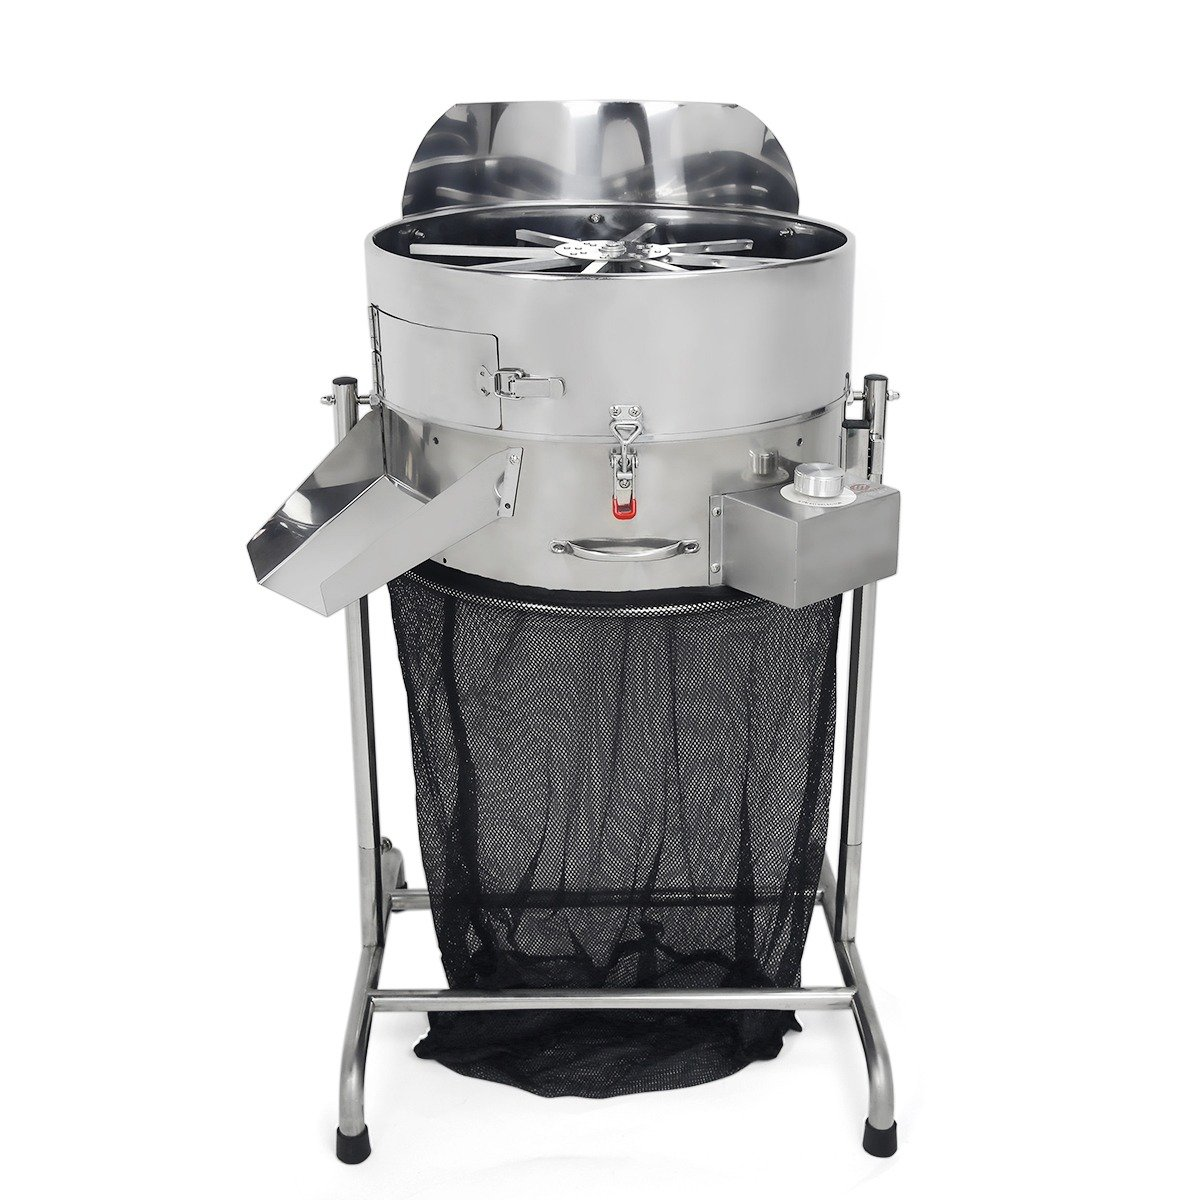 Professional Hydroponic Automatic Bud Leaf Trimmer 2 in 1 Reaper HPS Motorized